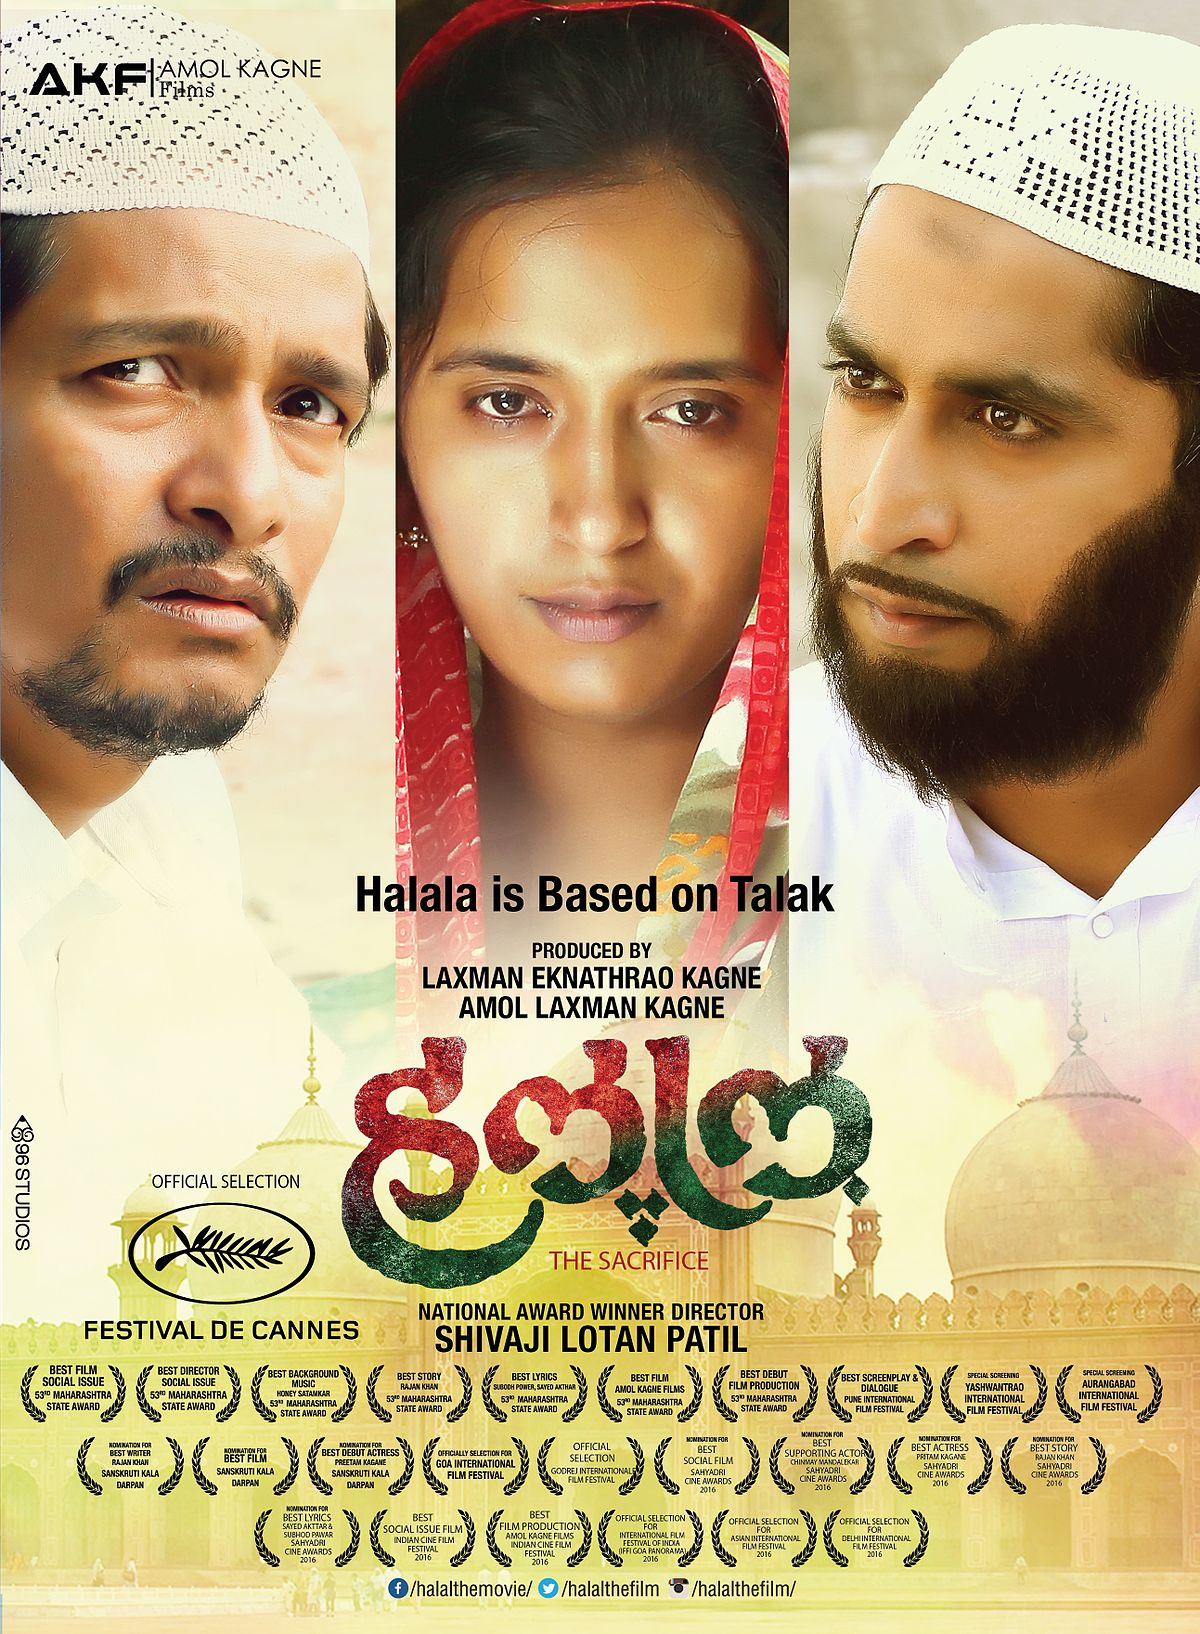 Halal trailer: What if a man wants to marry the woman he